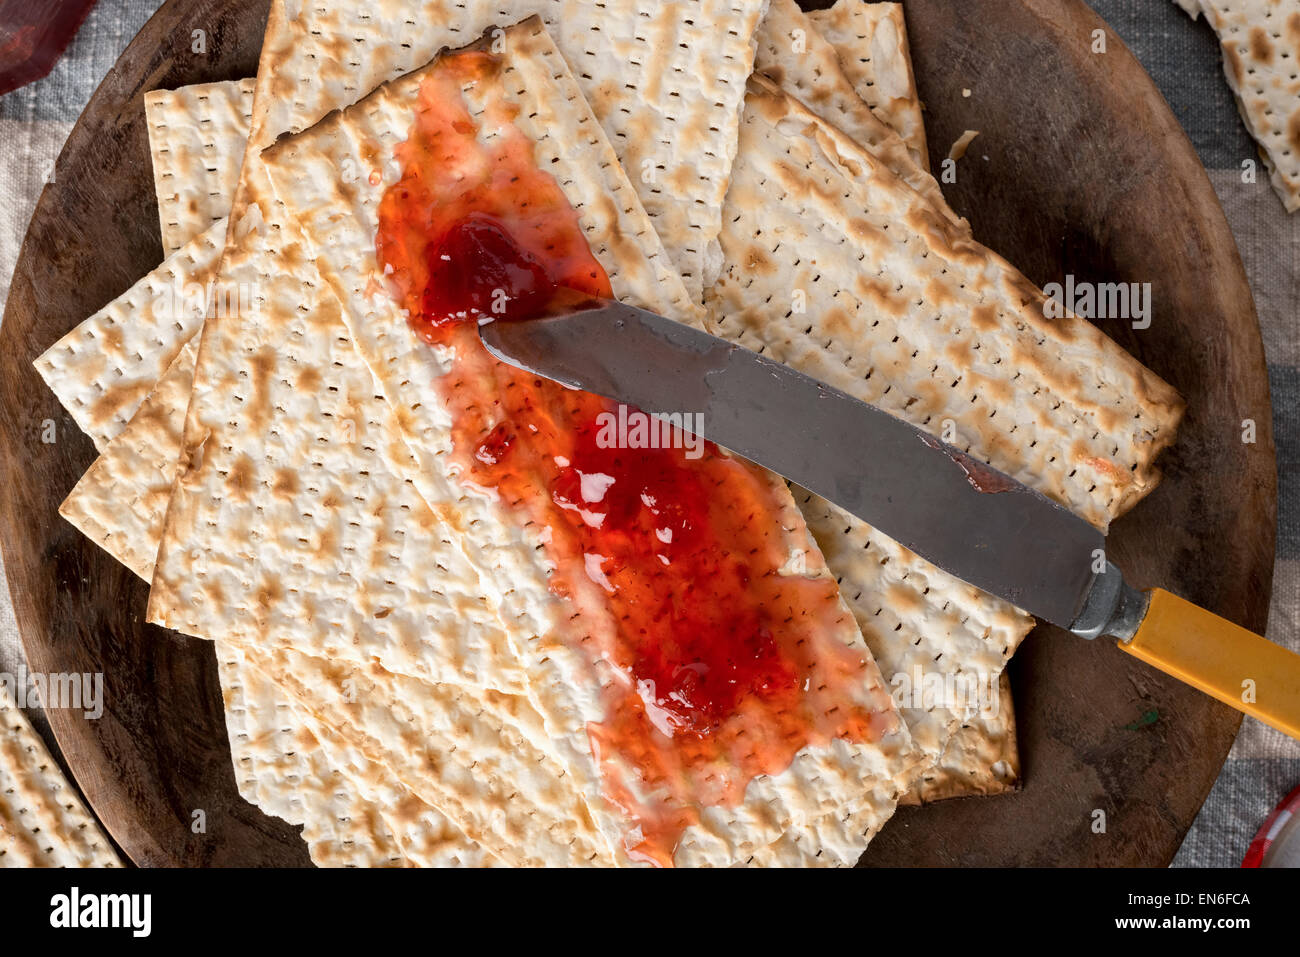 Matzah, served here with strawberry preserves,  the unleavened bread used in the Jewish holiday passover, set on - Stock Image